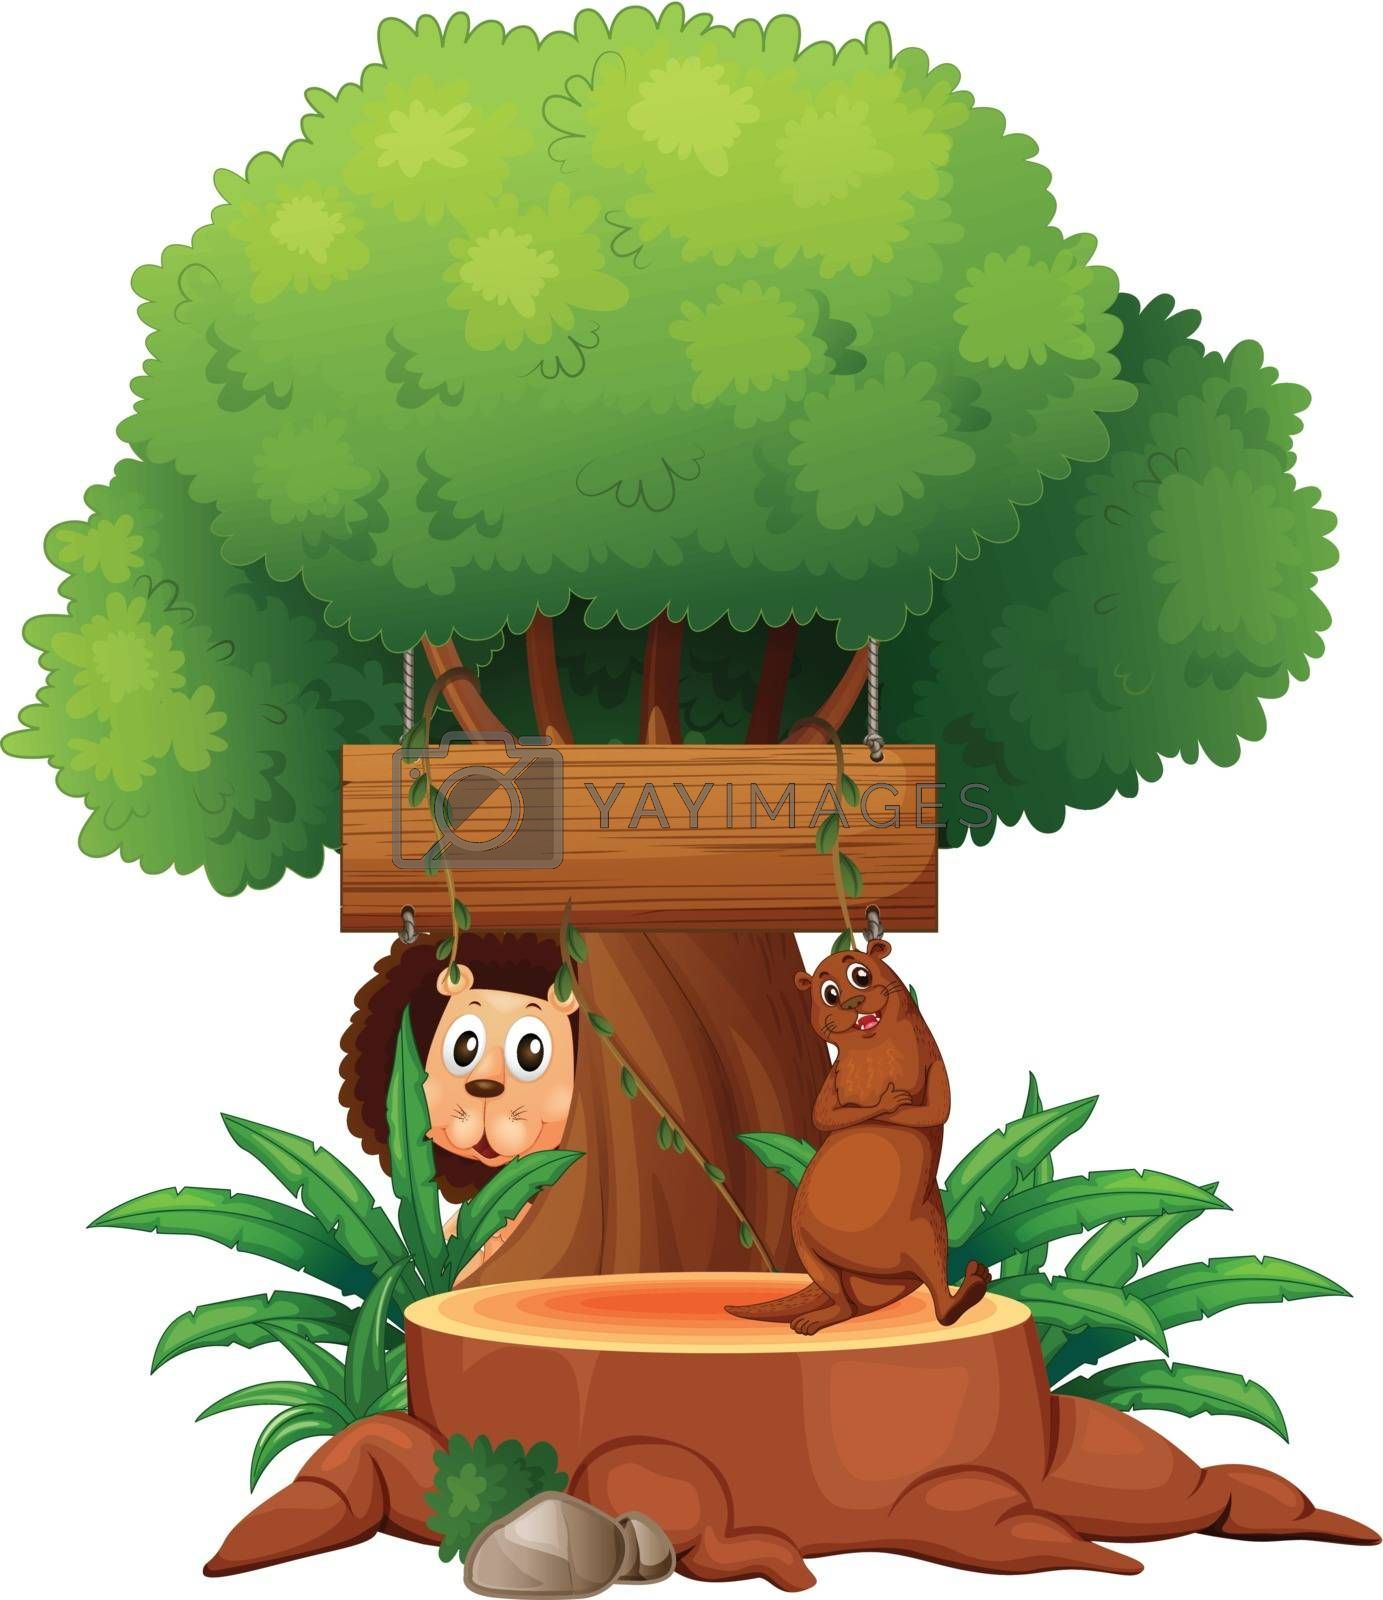 Illustration of a tree with animals and an empty signboard on a white background